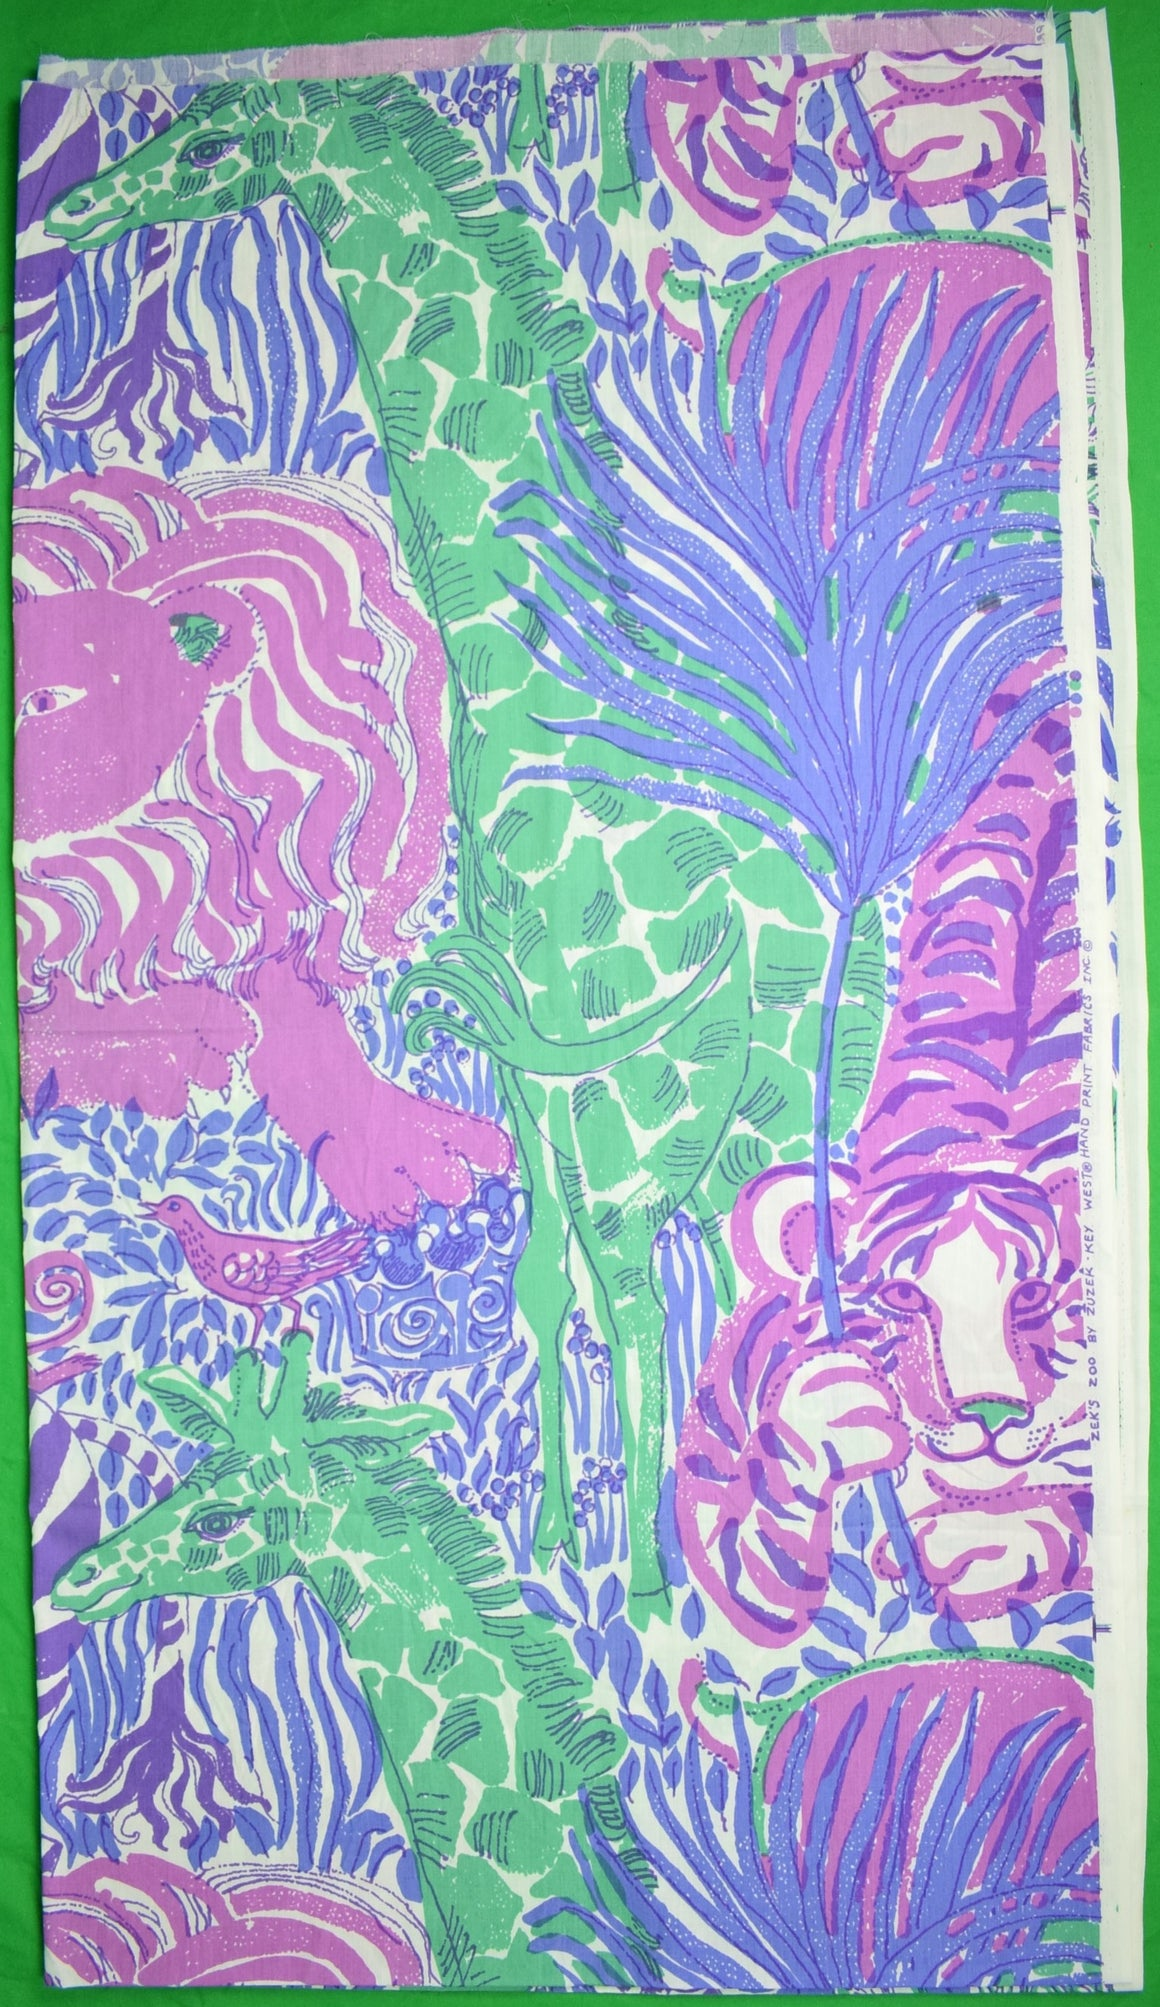 Zek's Zoo By Zuzek Key West Hand-Print c1960s Lilly Pulitzer Fabric (Sold!)